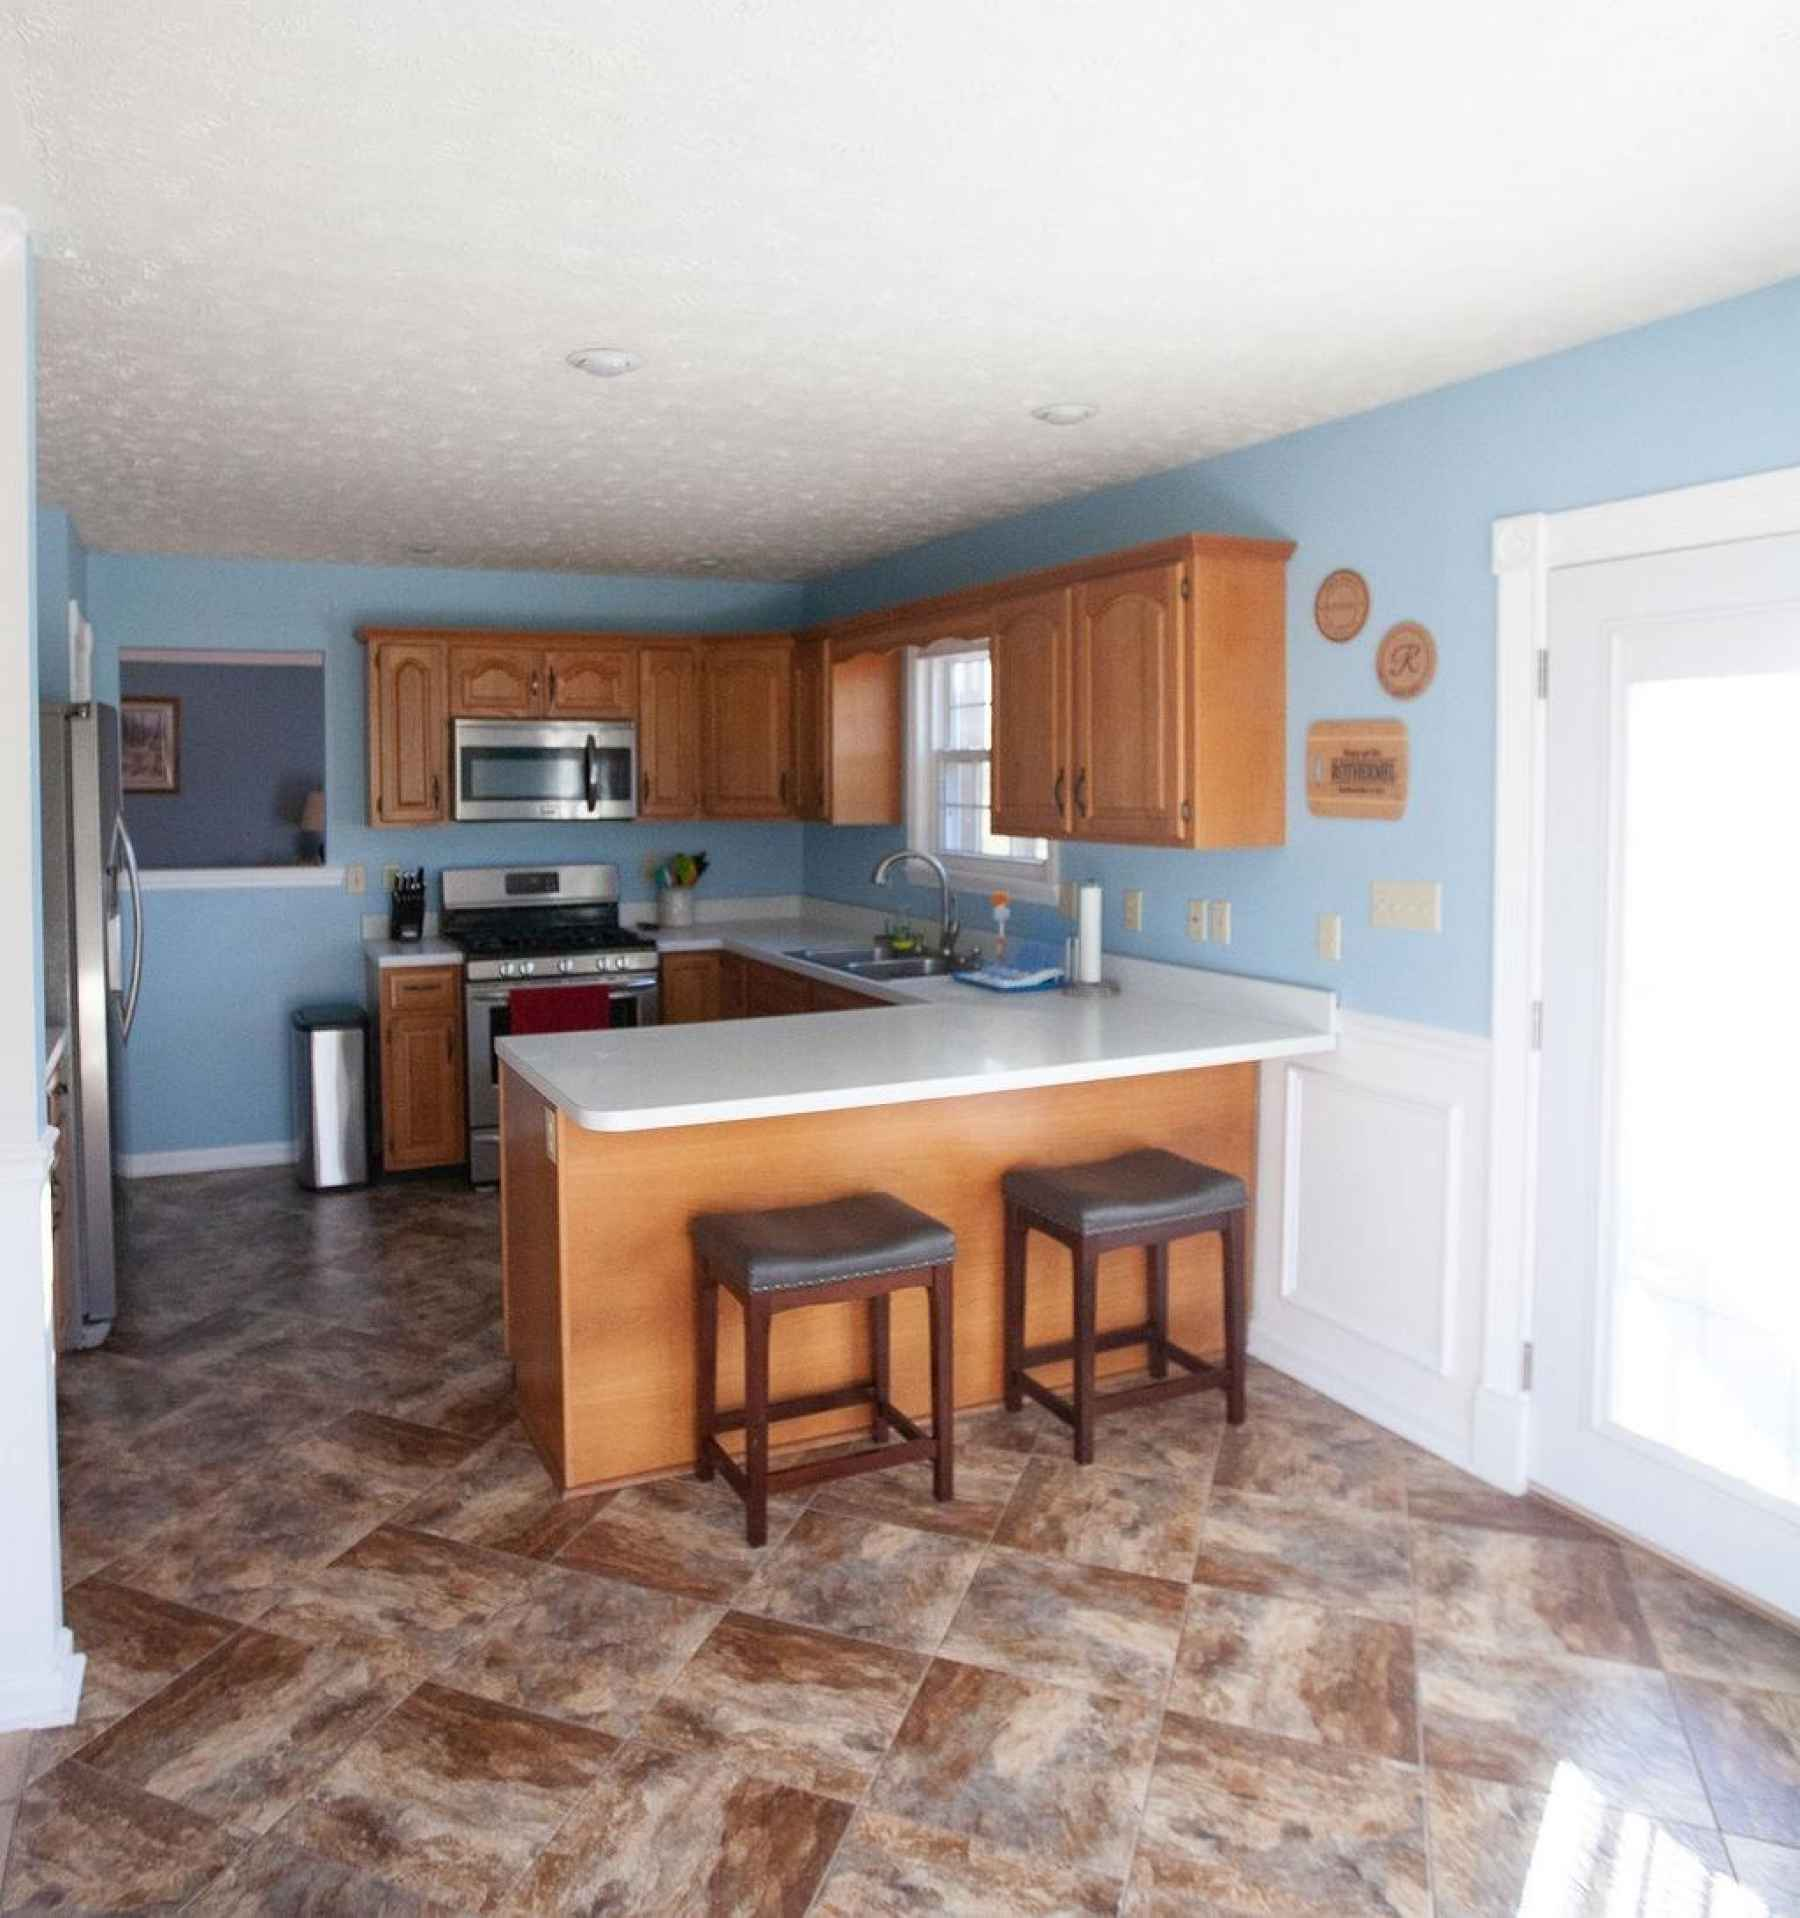 A spacious eat-in kitchen with a beautiful tiled floor, bar and oak cabinets